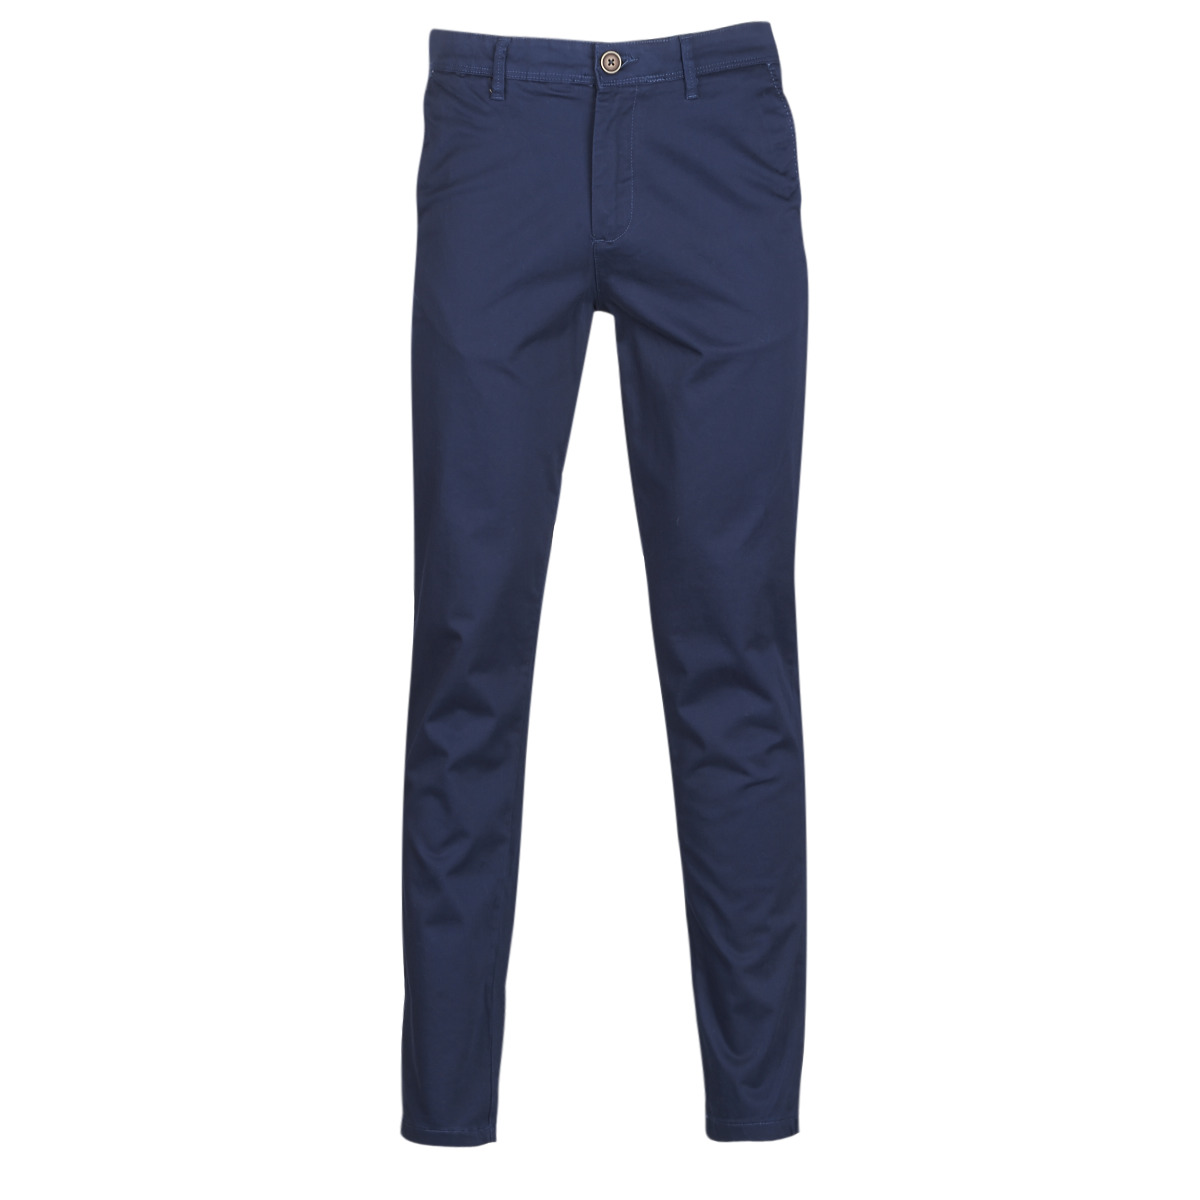 Blue Slim Fit Chinos Men39;s Pants Jack /& Jones